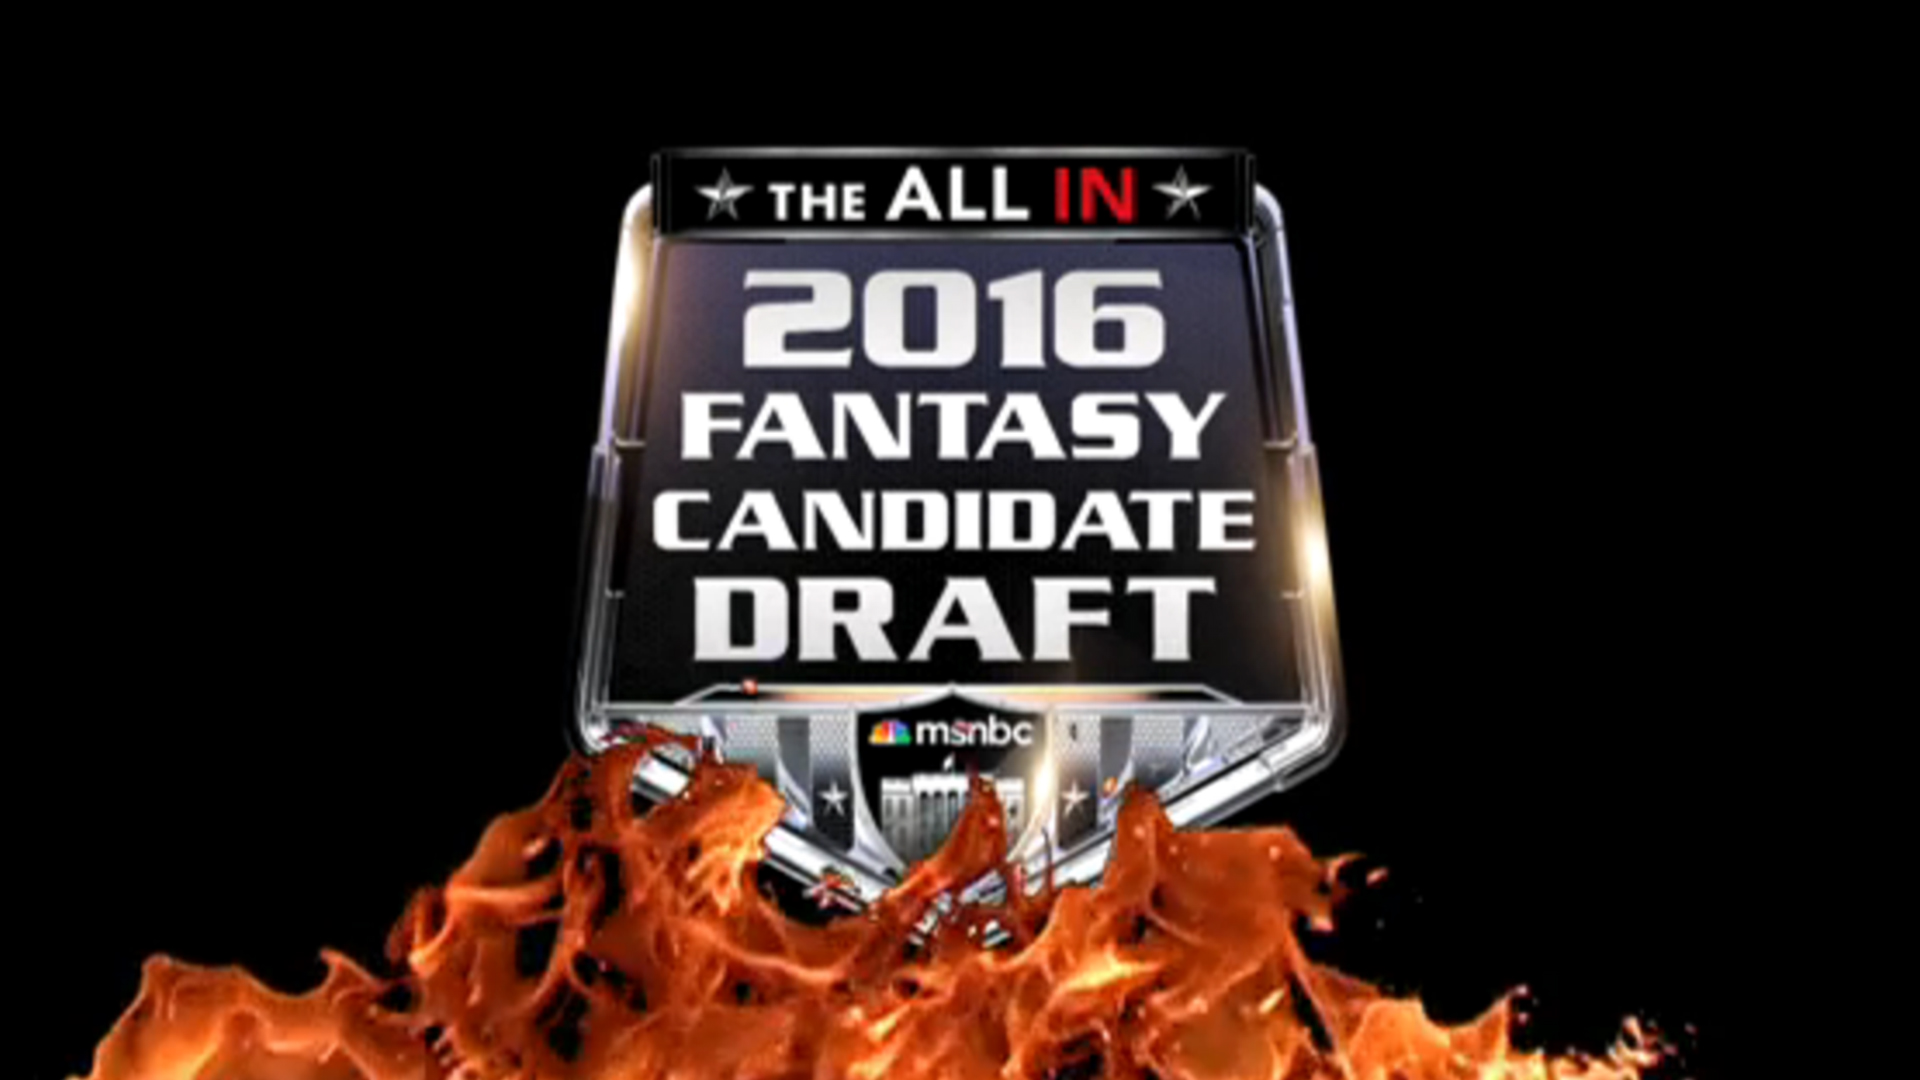 The All In 2016 Fantasy Candidate Draft